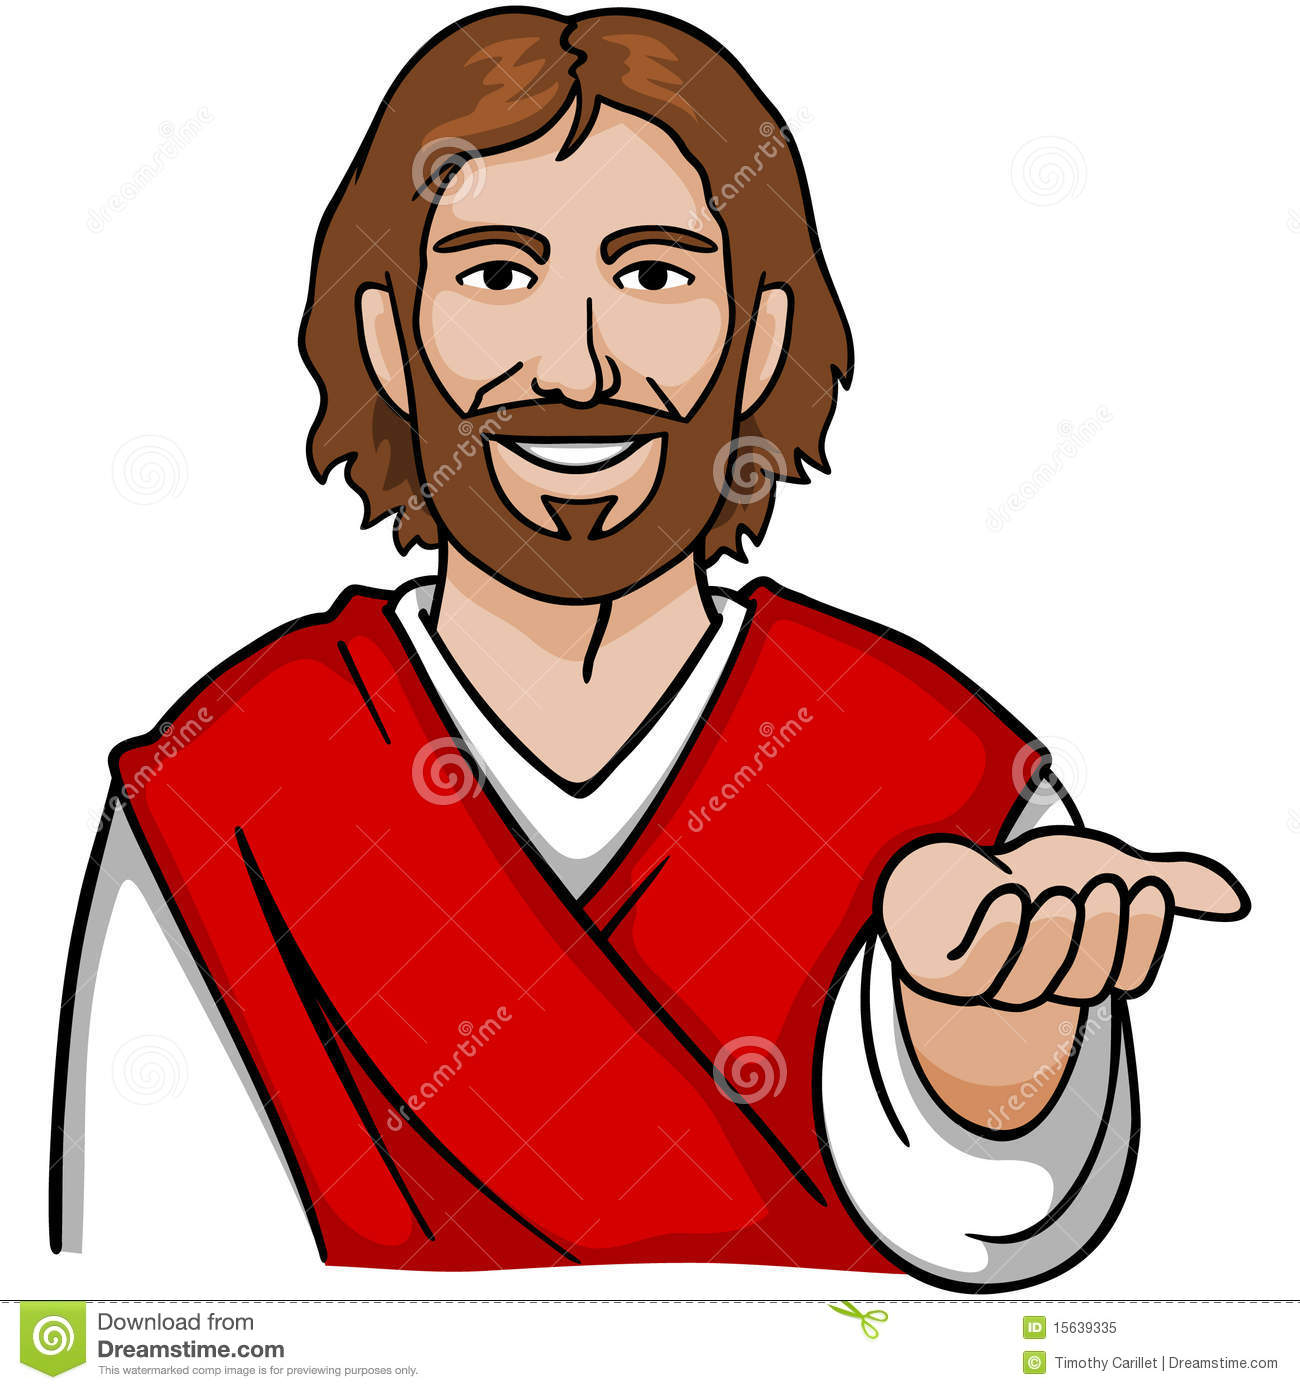 Free download jesus clipart.